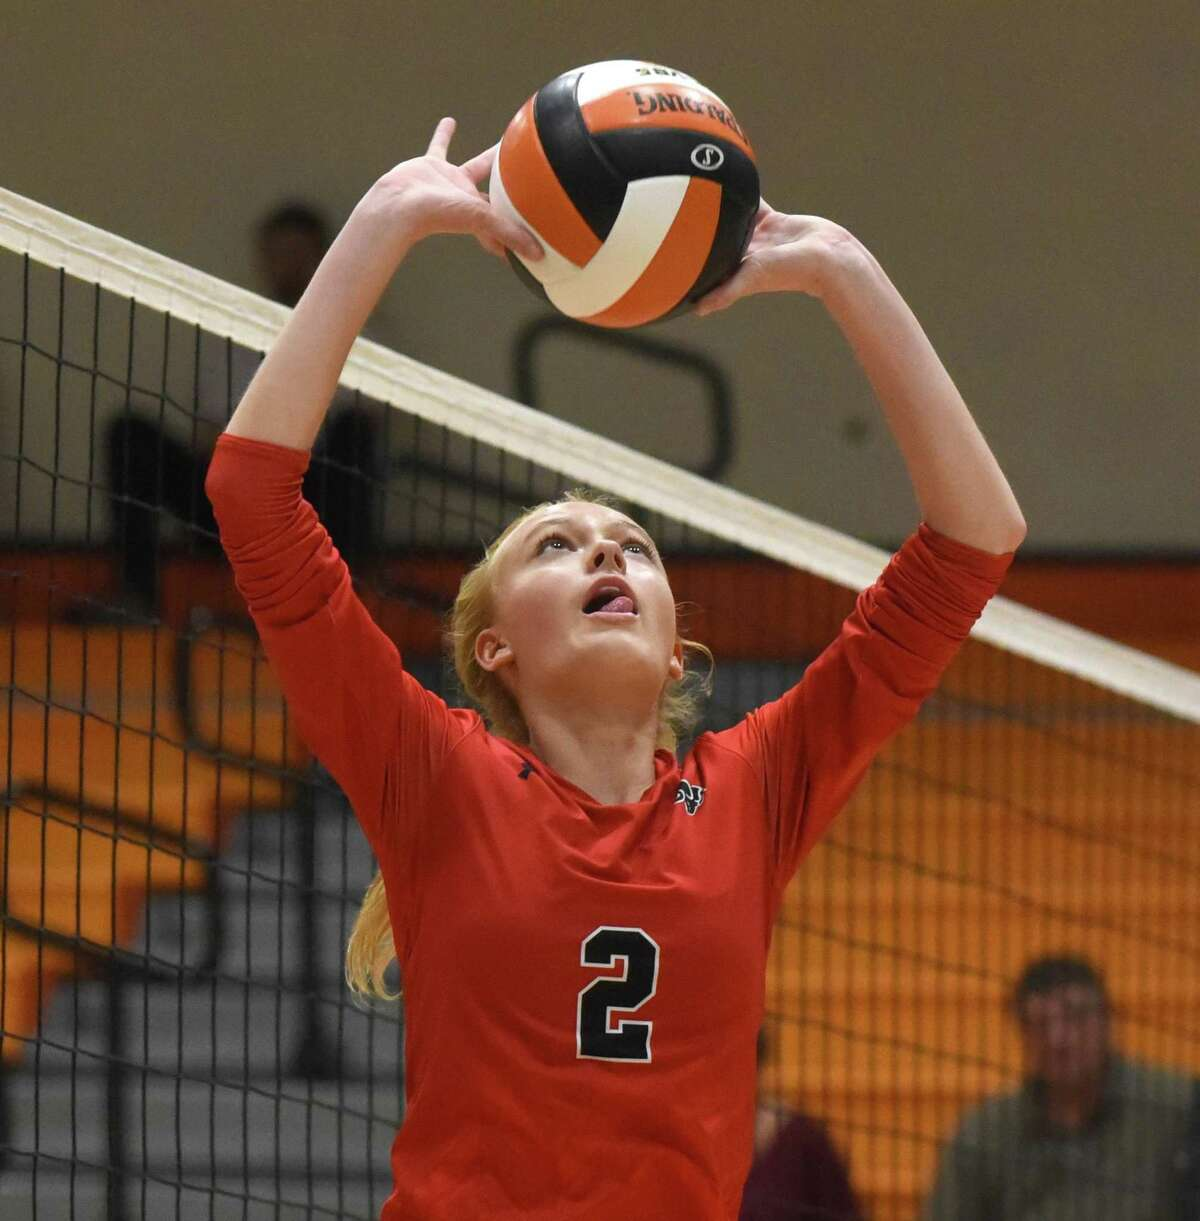 New Canaan's Elle Sneddon sets the ball during a volleyball match between New Canaan and Stamford at Stamford High School.